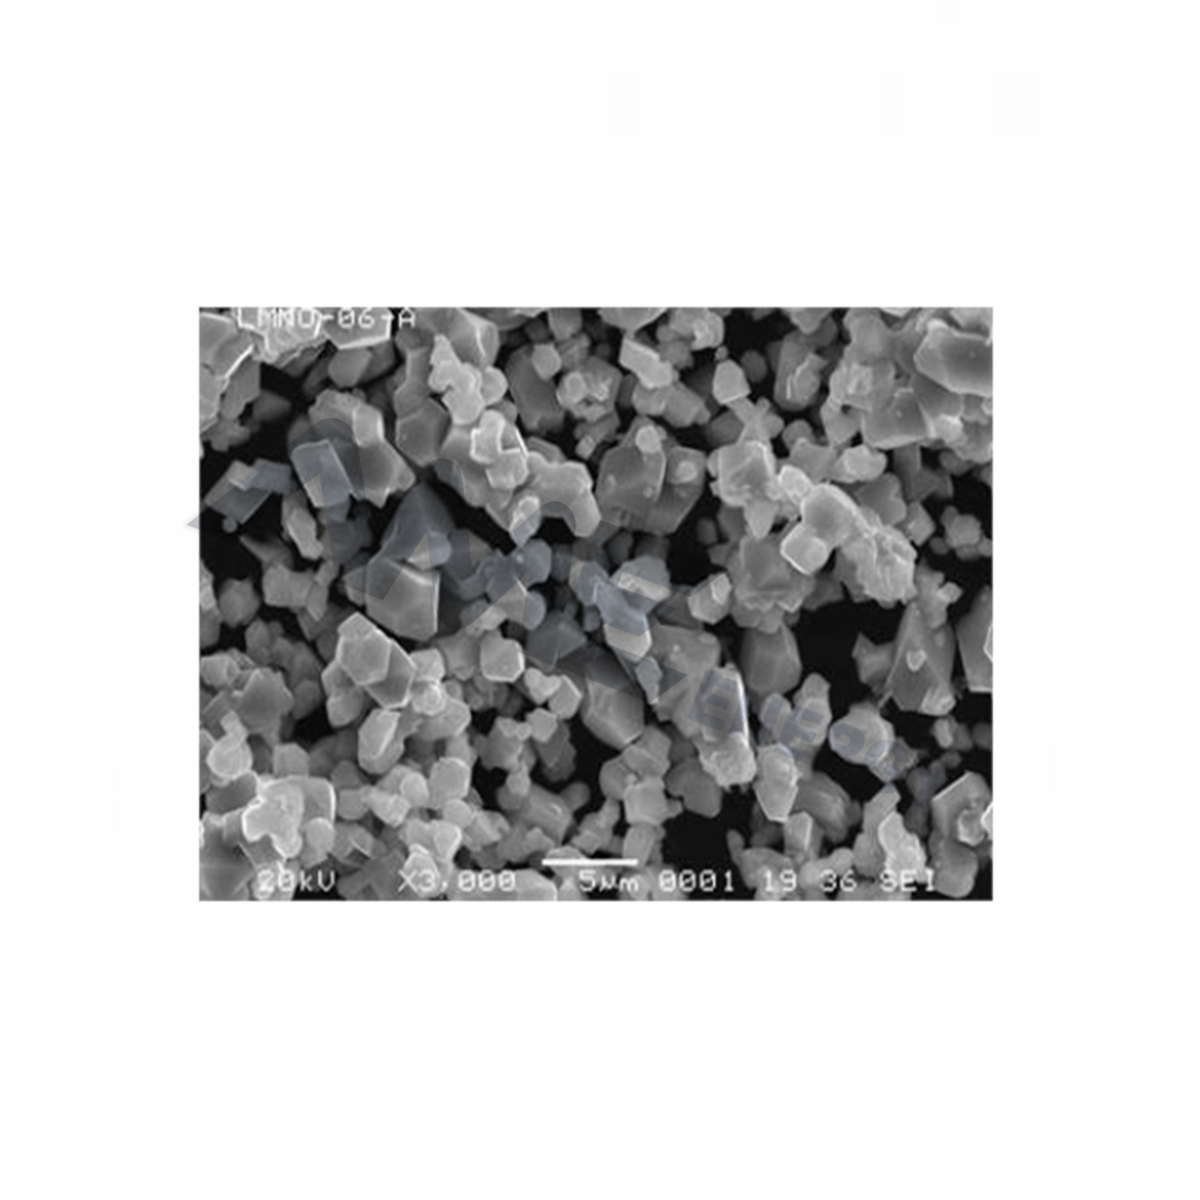 Spinel Lithium manganese oxide (LiMn2O4) materials for lithium ion battery